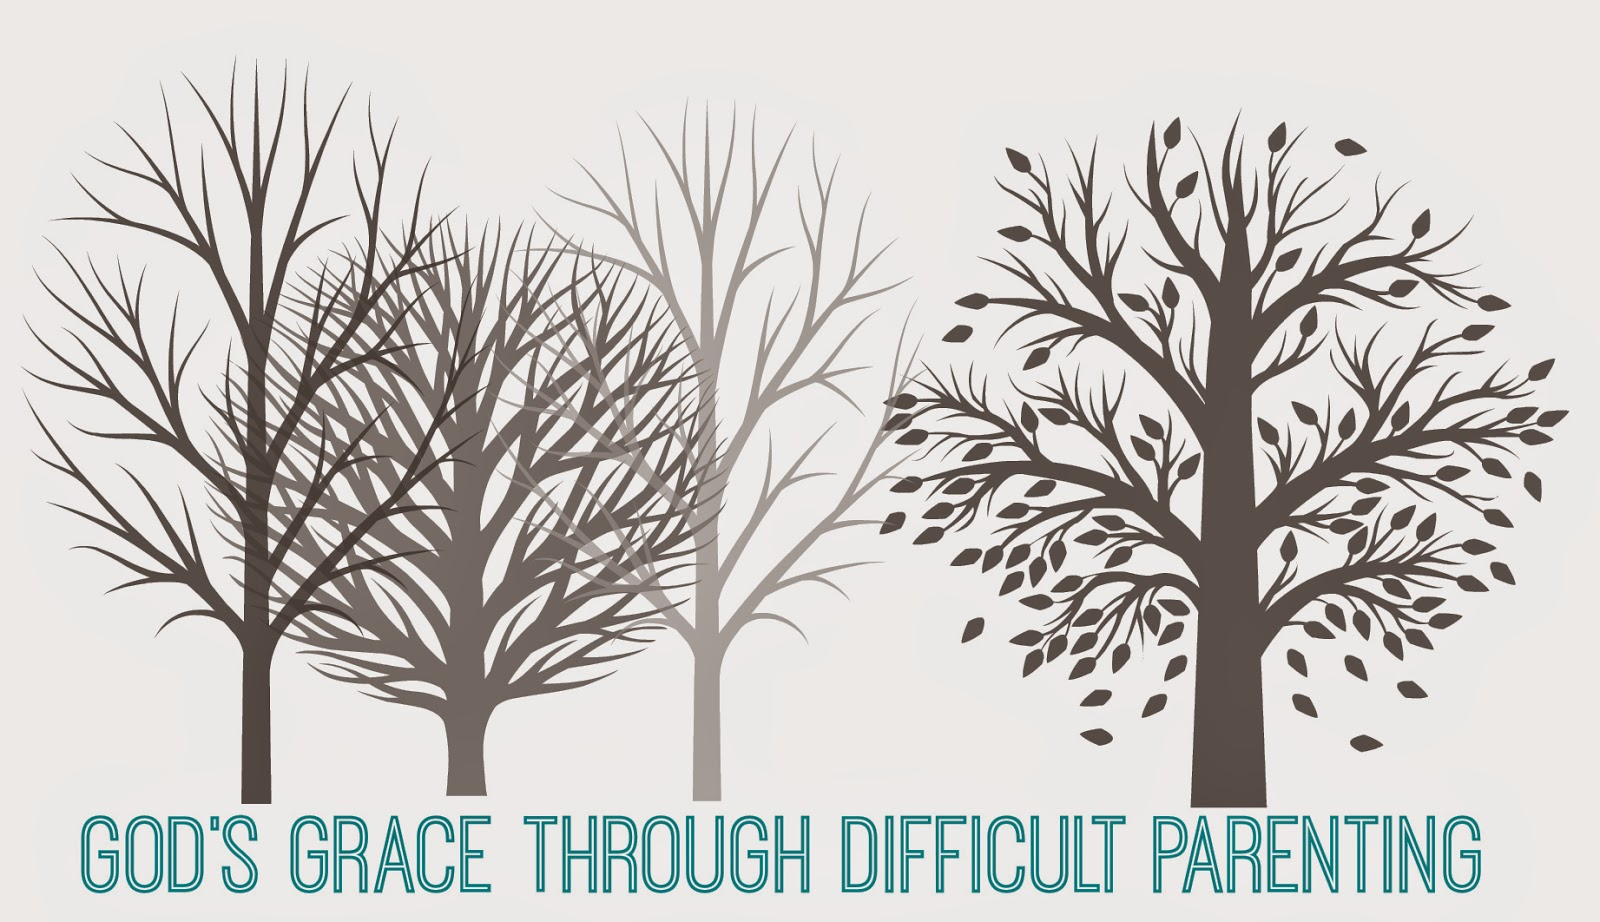 gods grace through difficult parenting, simple on purpose